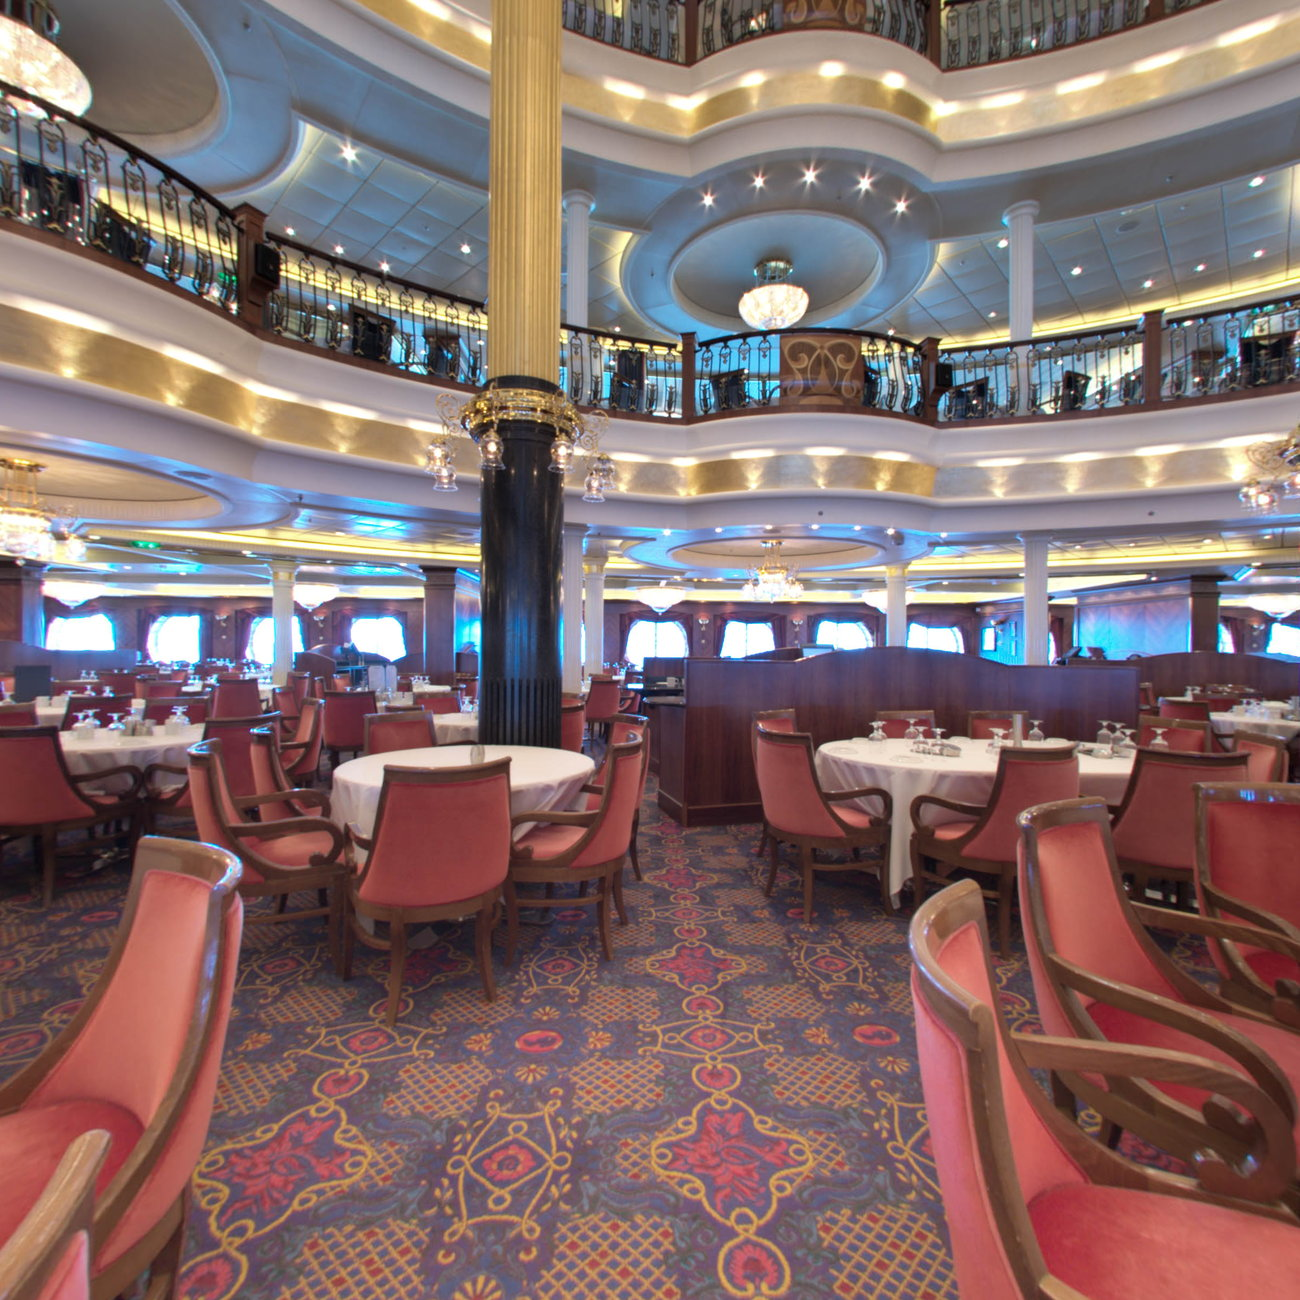 Main Dining Room: Main Dining Rooms On Royal Caribbean Freedom Of The Seas